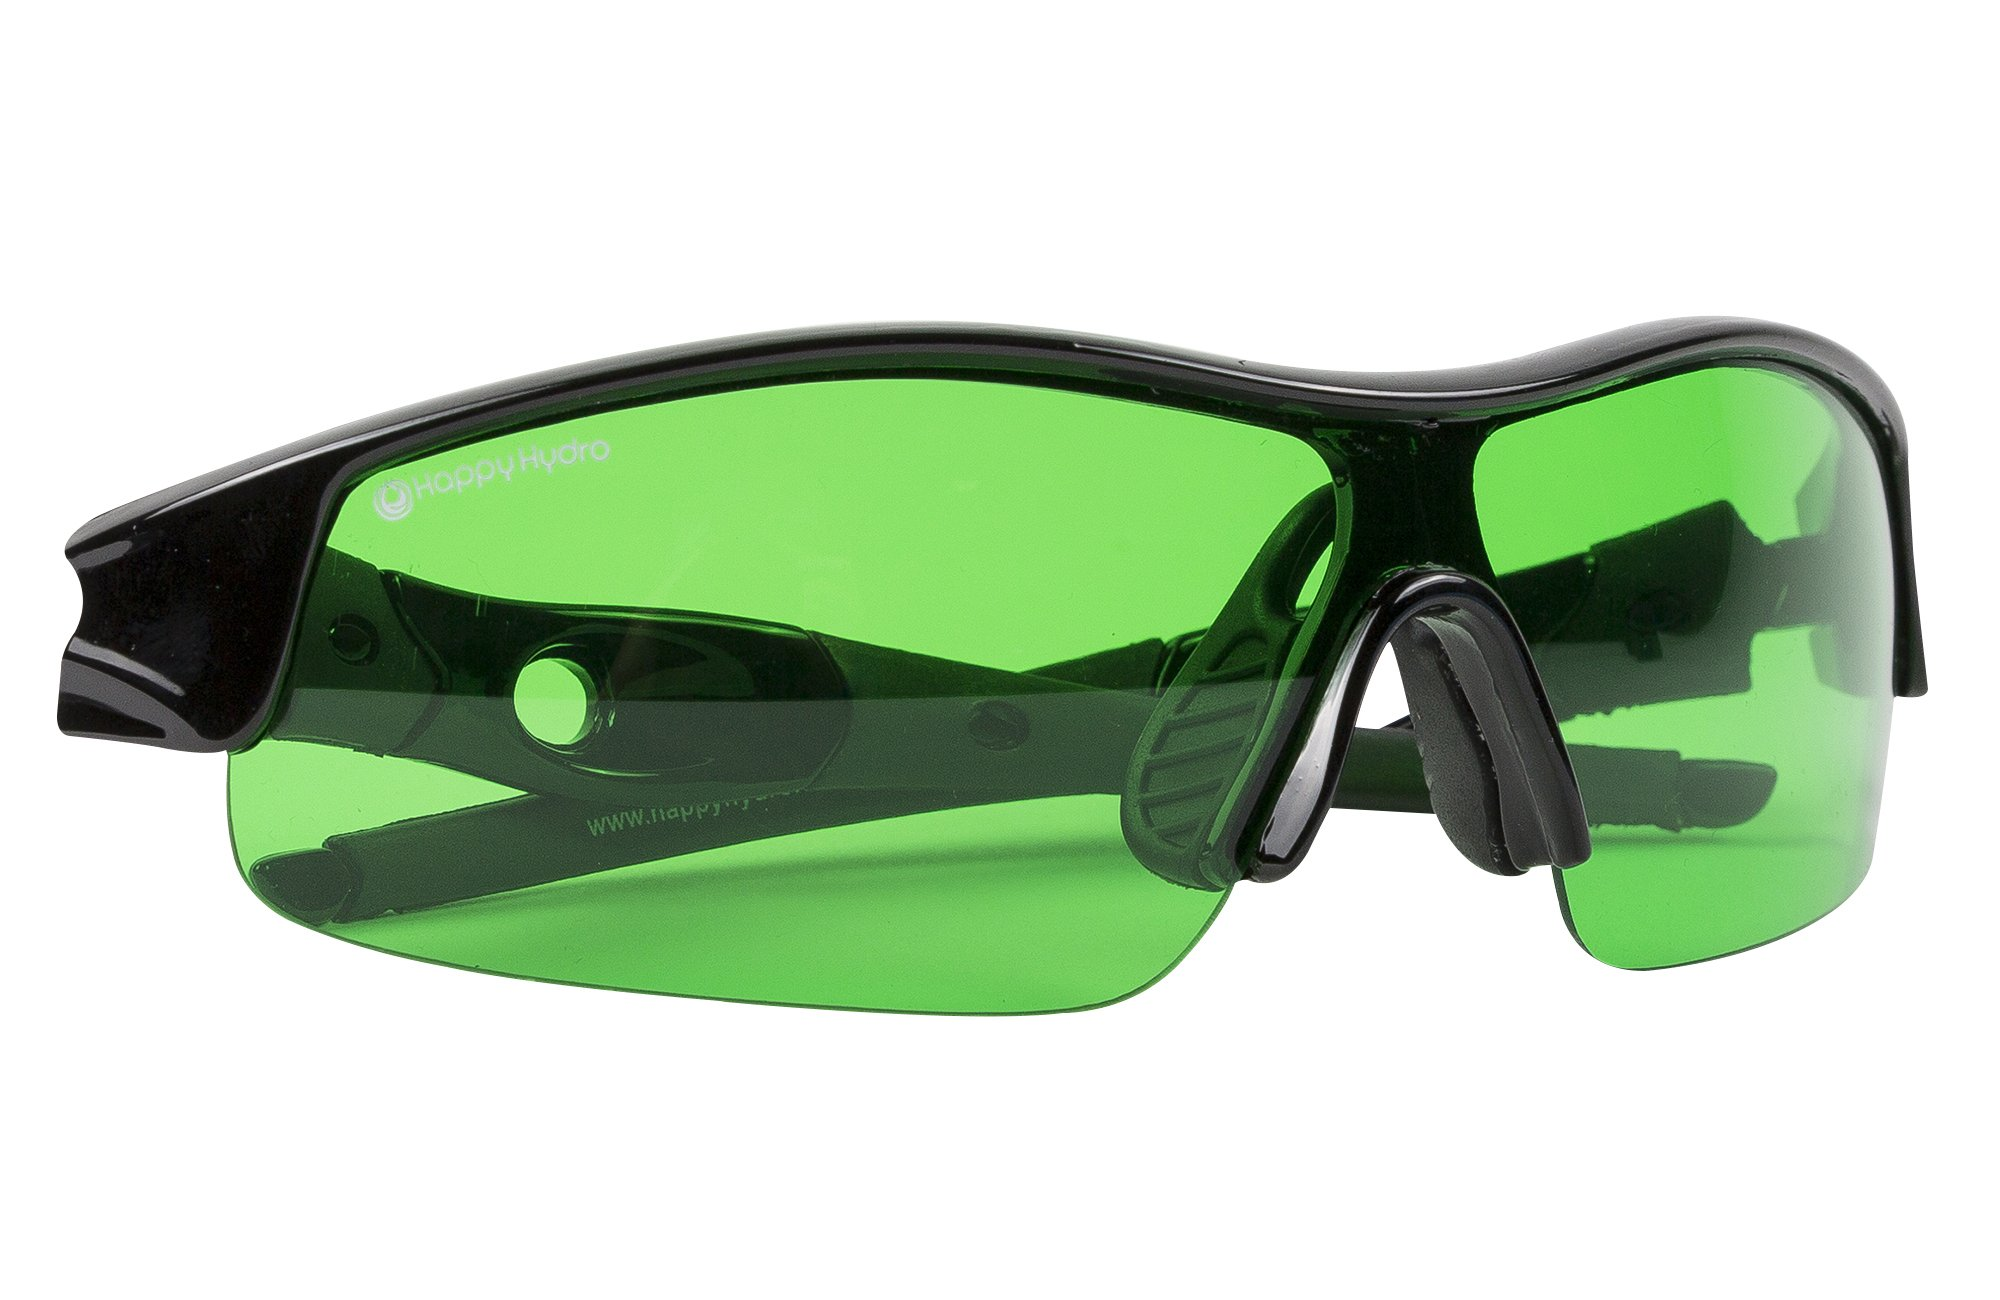 Happy Hydro LED UV Protective Glasses with Green Lenses for Grow Room Hydroponics